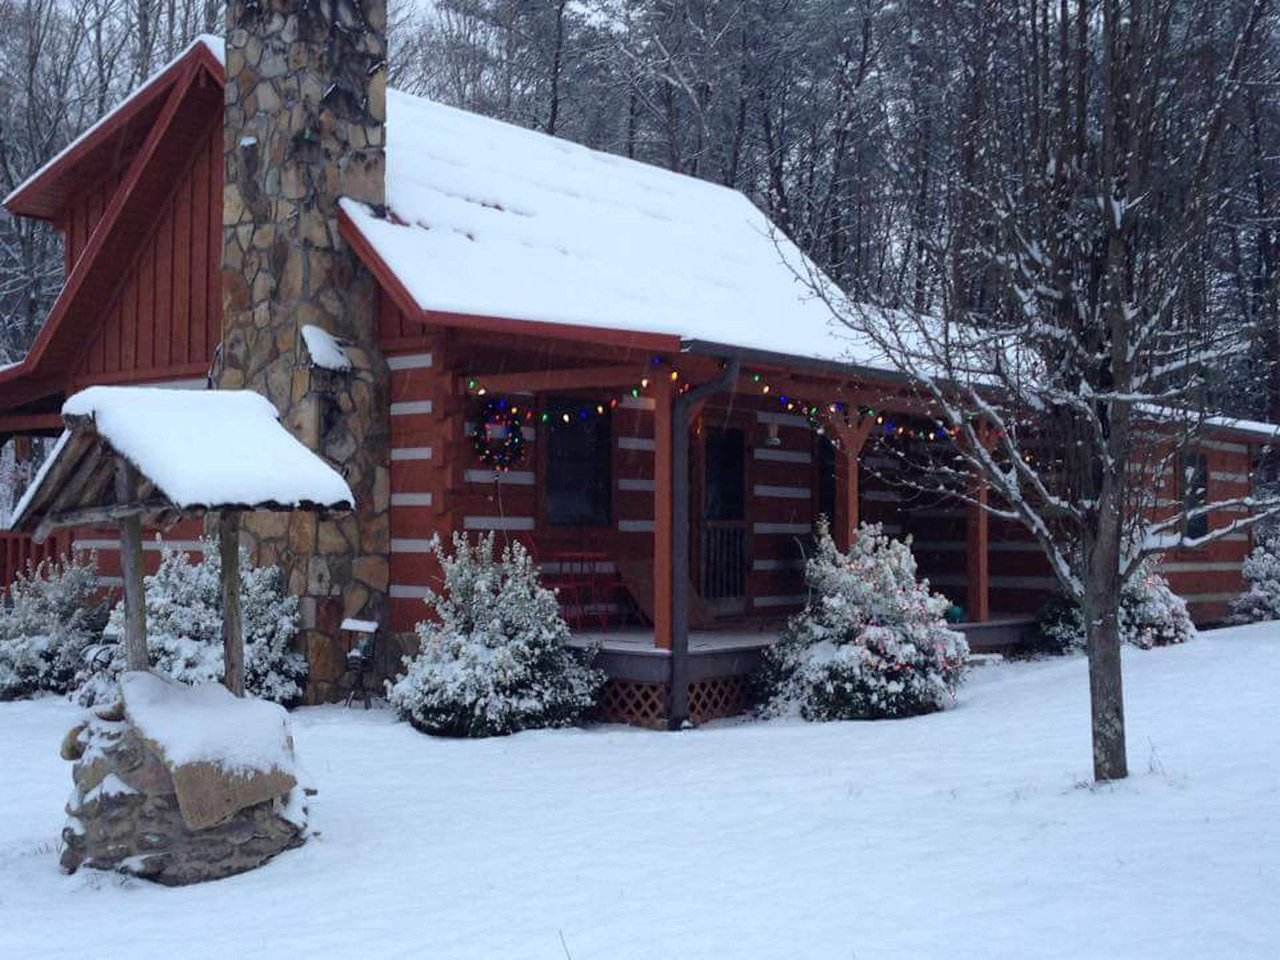 Winter Homes For Sale In Sumner County Tn